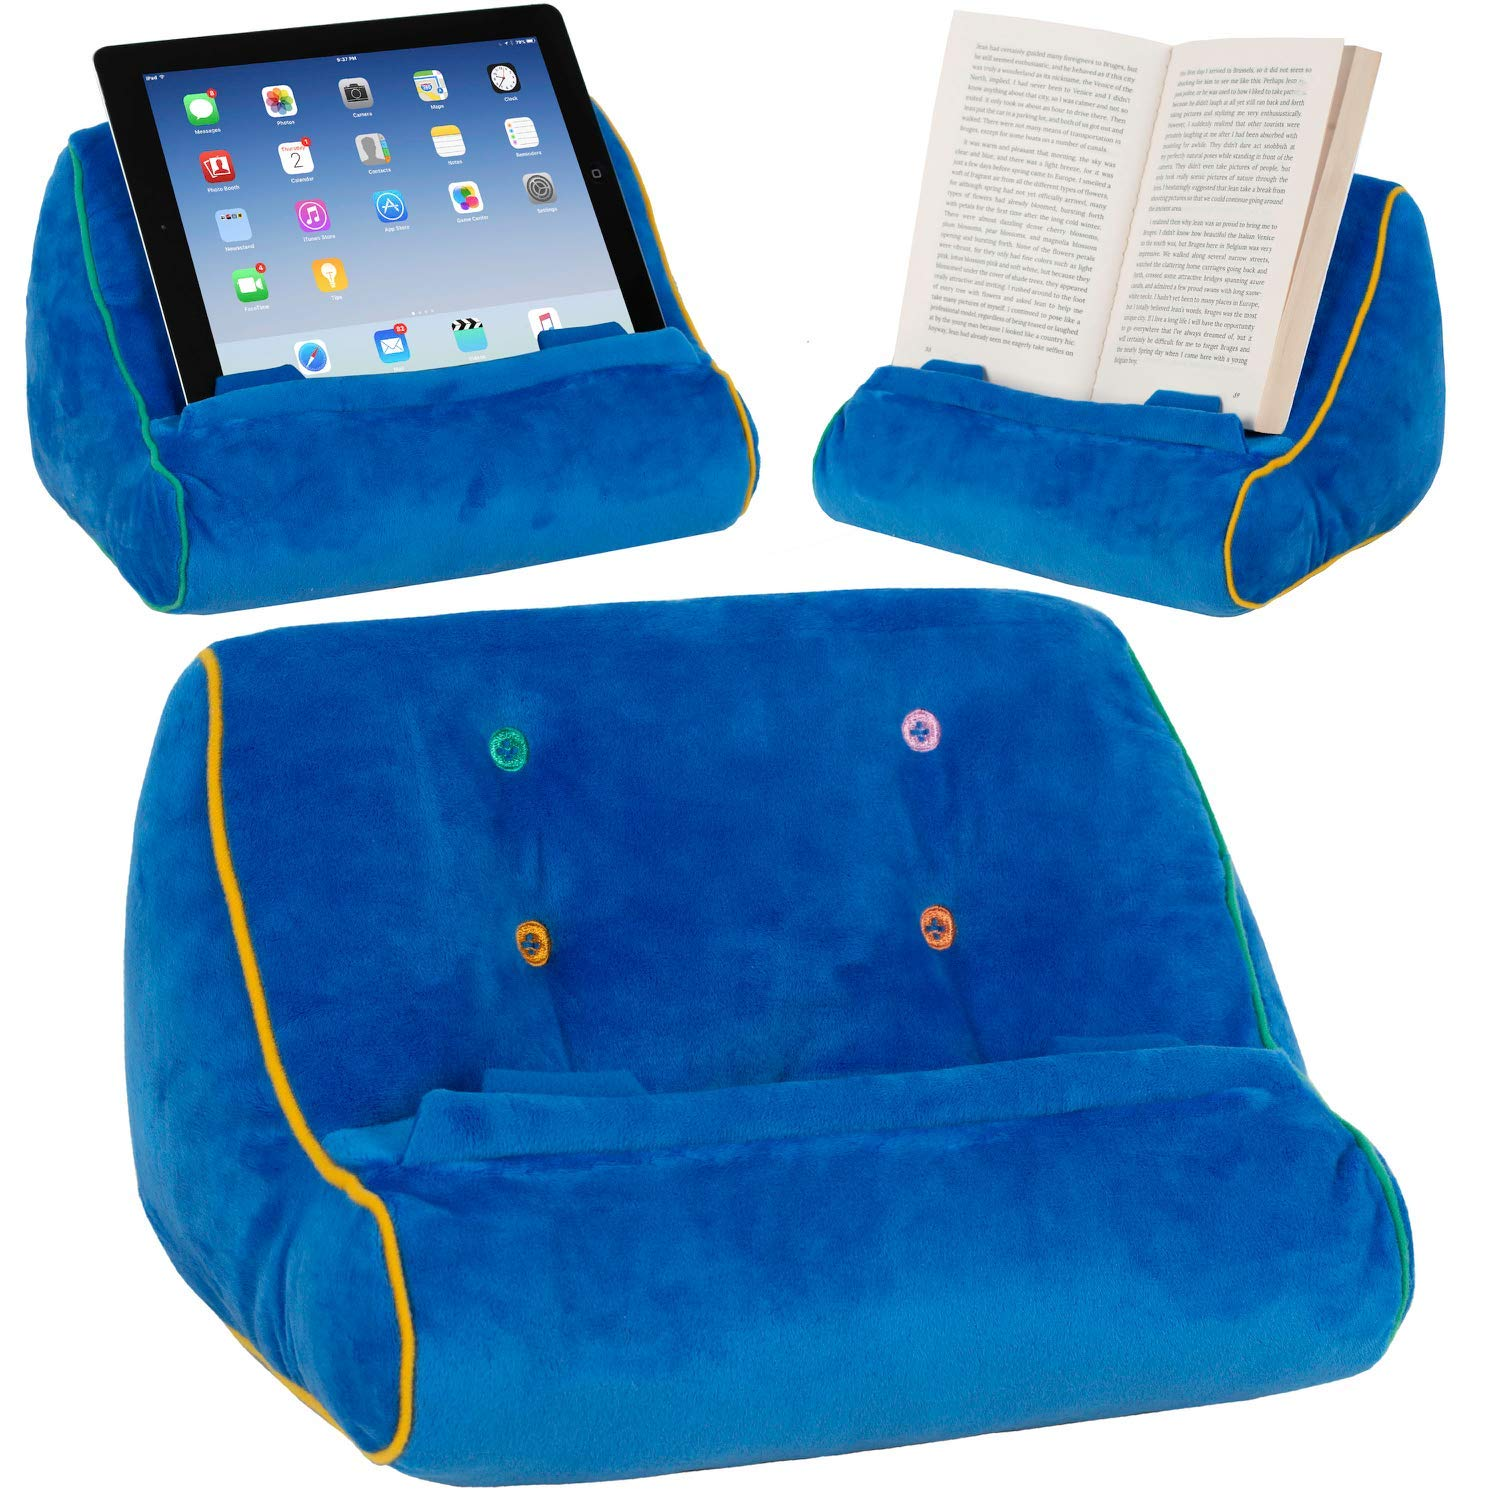 Blu Gifts for Readers /& Writers Book Couch Supporto iPad Tablet novit/à Leggio in Cuscino per eReader Idea Regalo